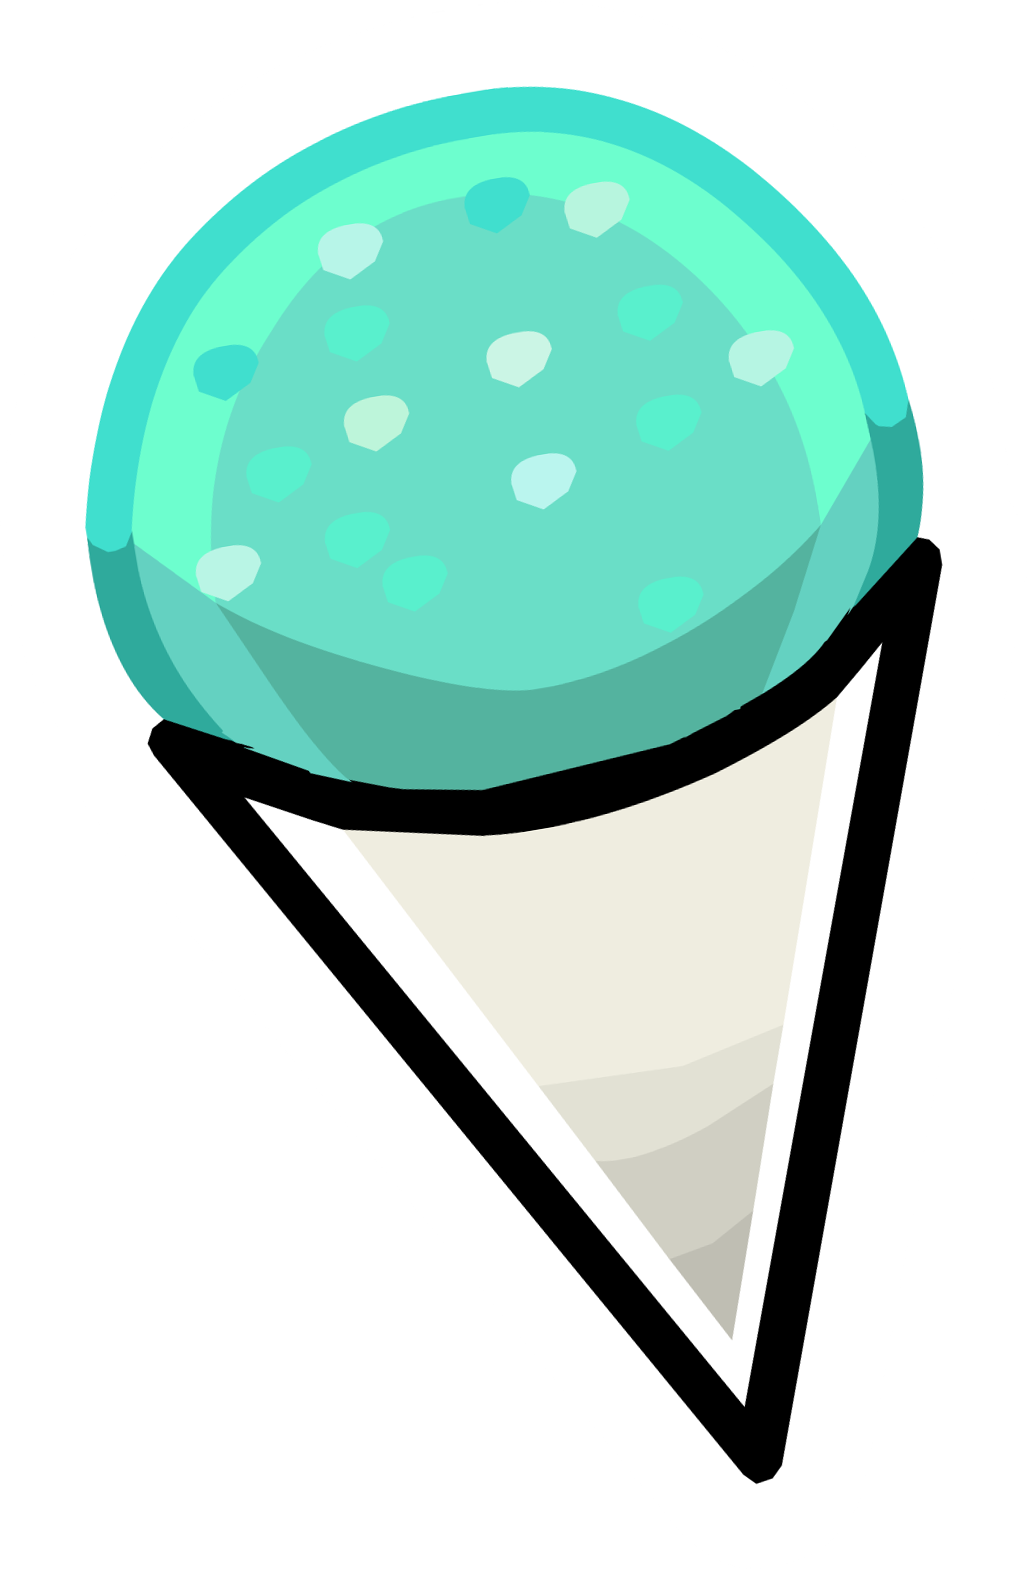 image snow cone pin png club penguin wiki fandom powered by wikia rh clubpenguin wikia com